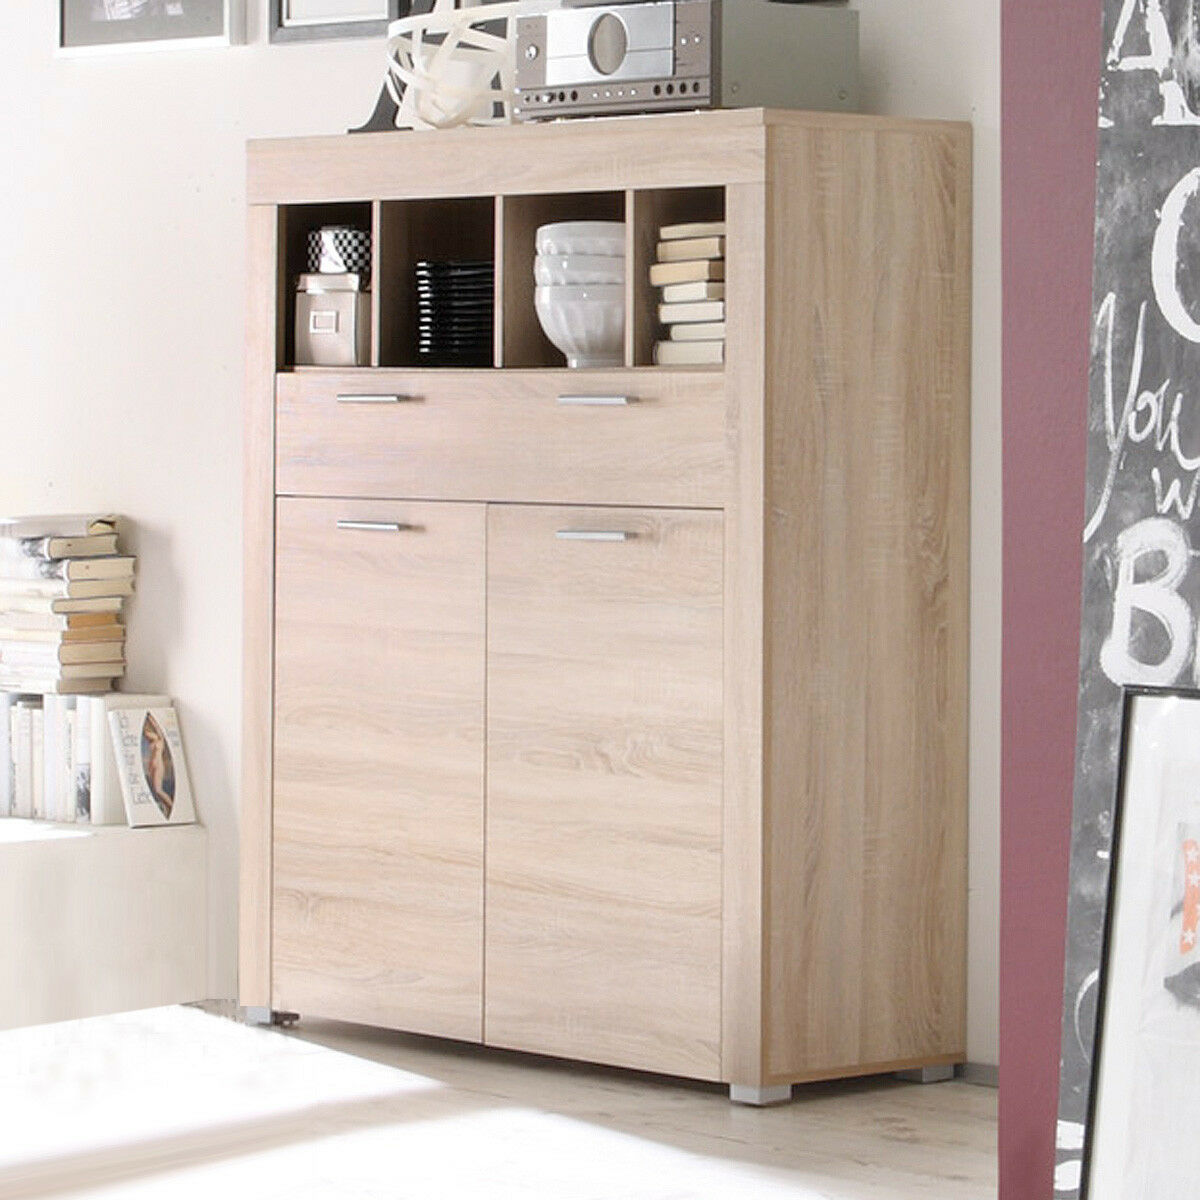 kommode boom schrank sideboard sonoma eiche s gerau hell eur 209 95 picclick de. Black Bedroom Furniture Sets. Home Design Ideas